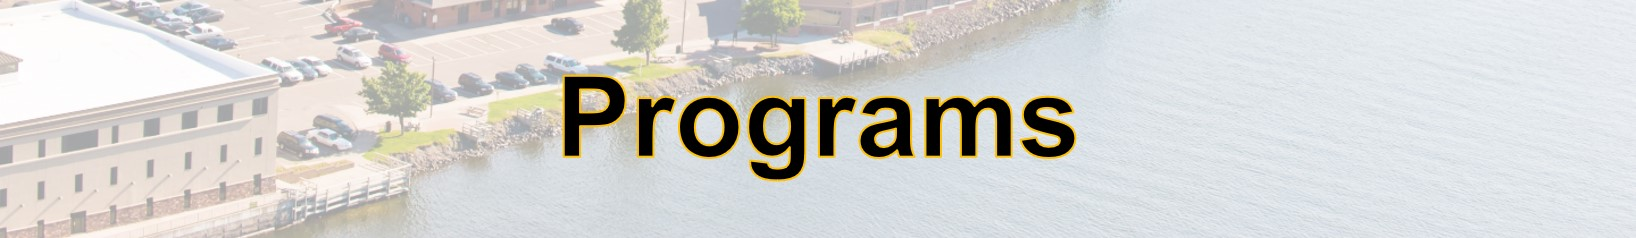 Program title with transparent image of building on a canal in the background